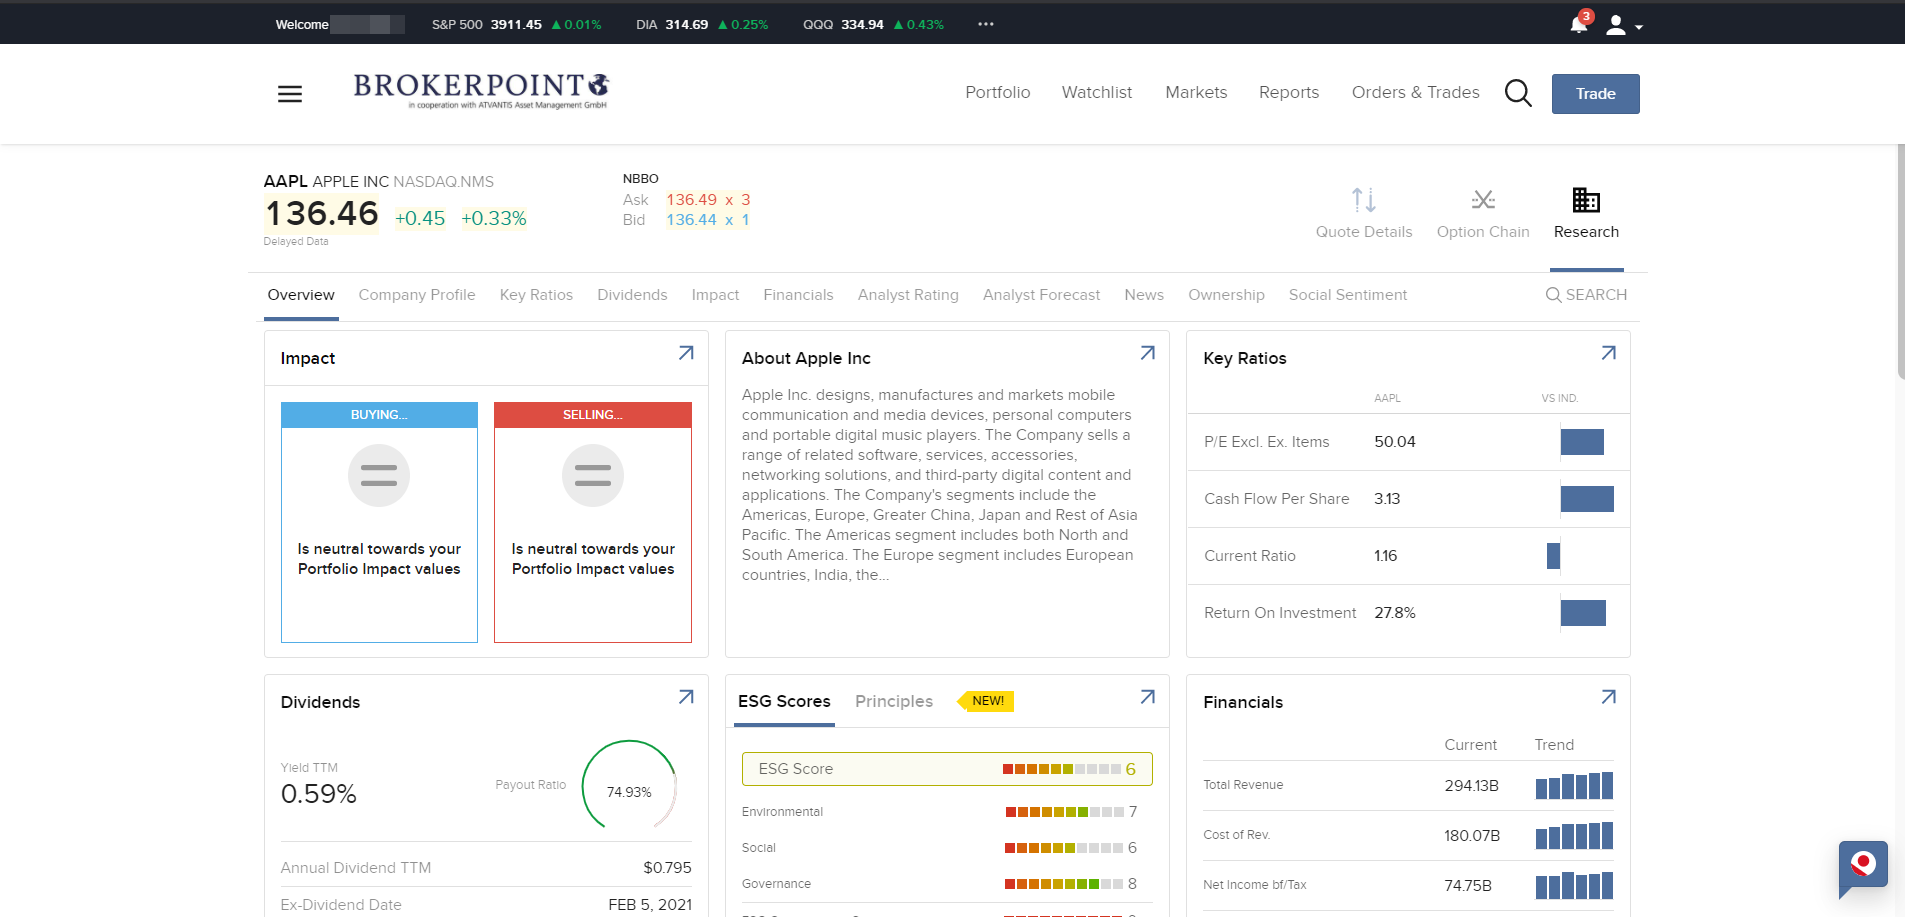 Brokerpoint review - Research - Fundamental data